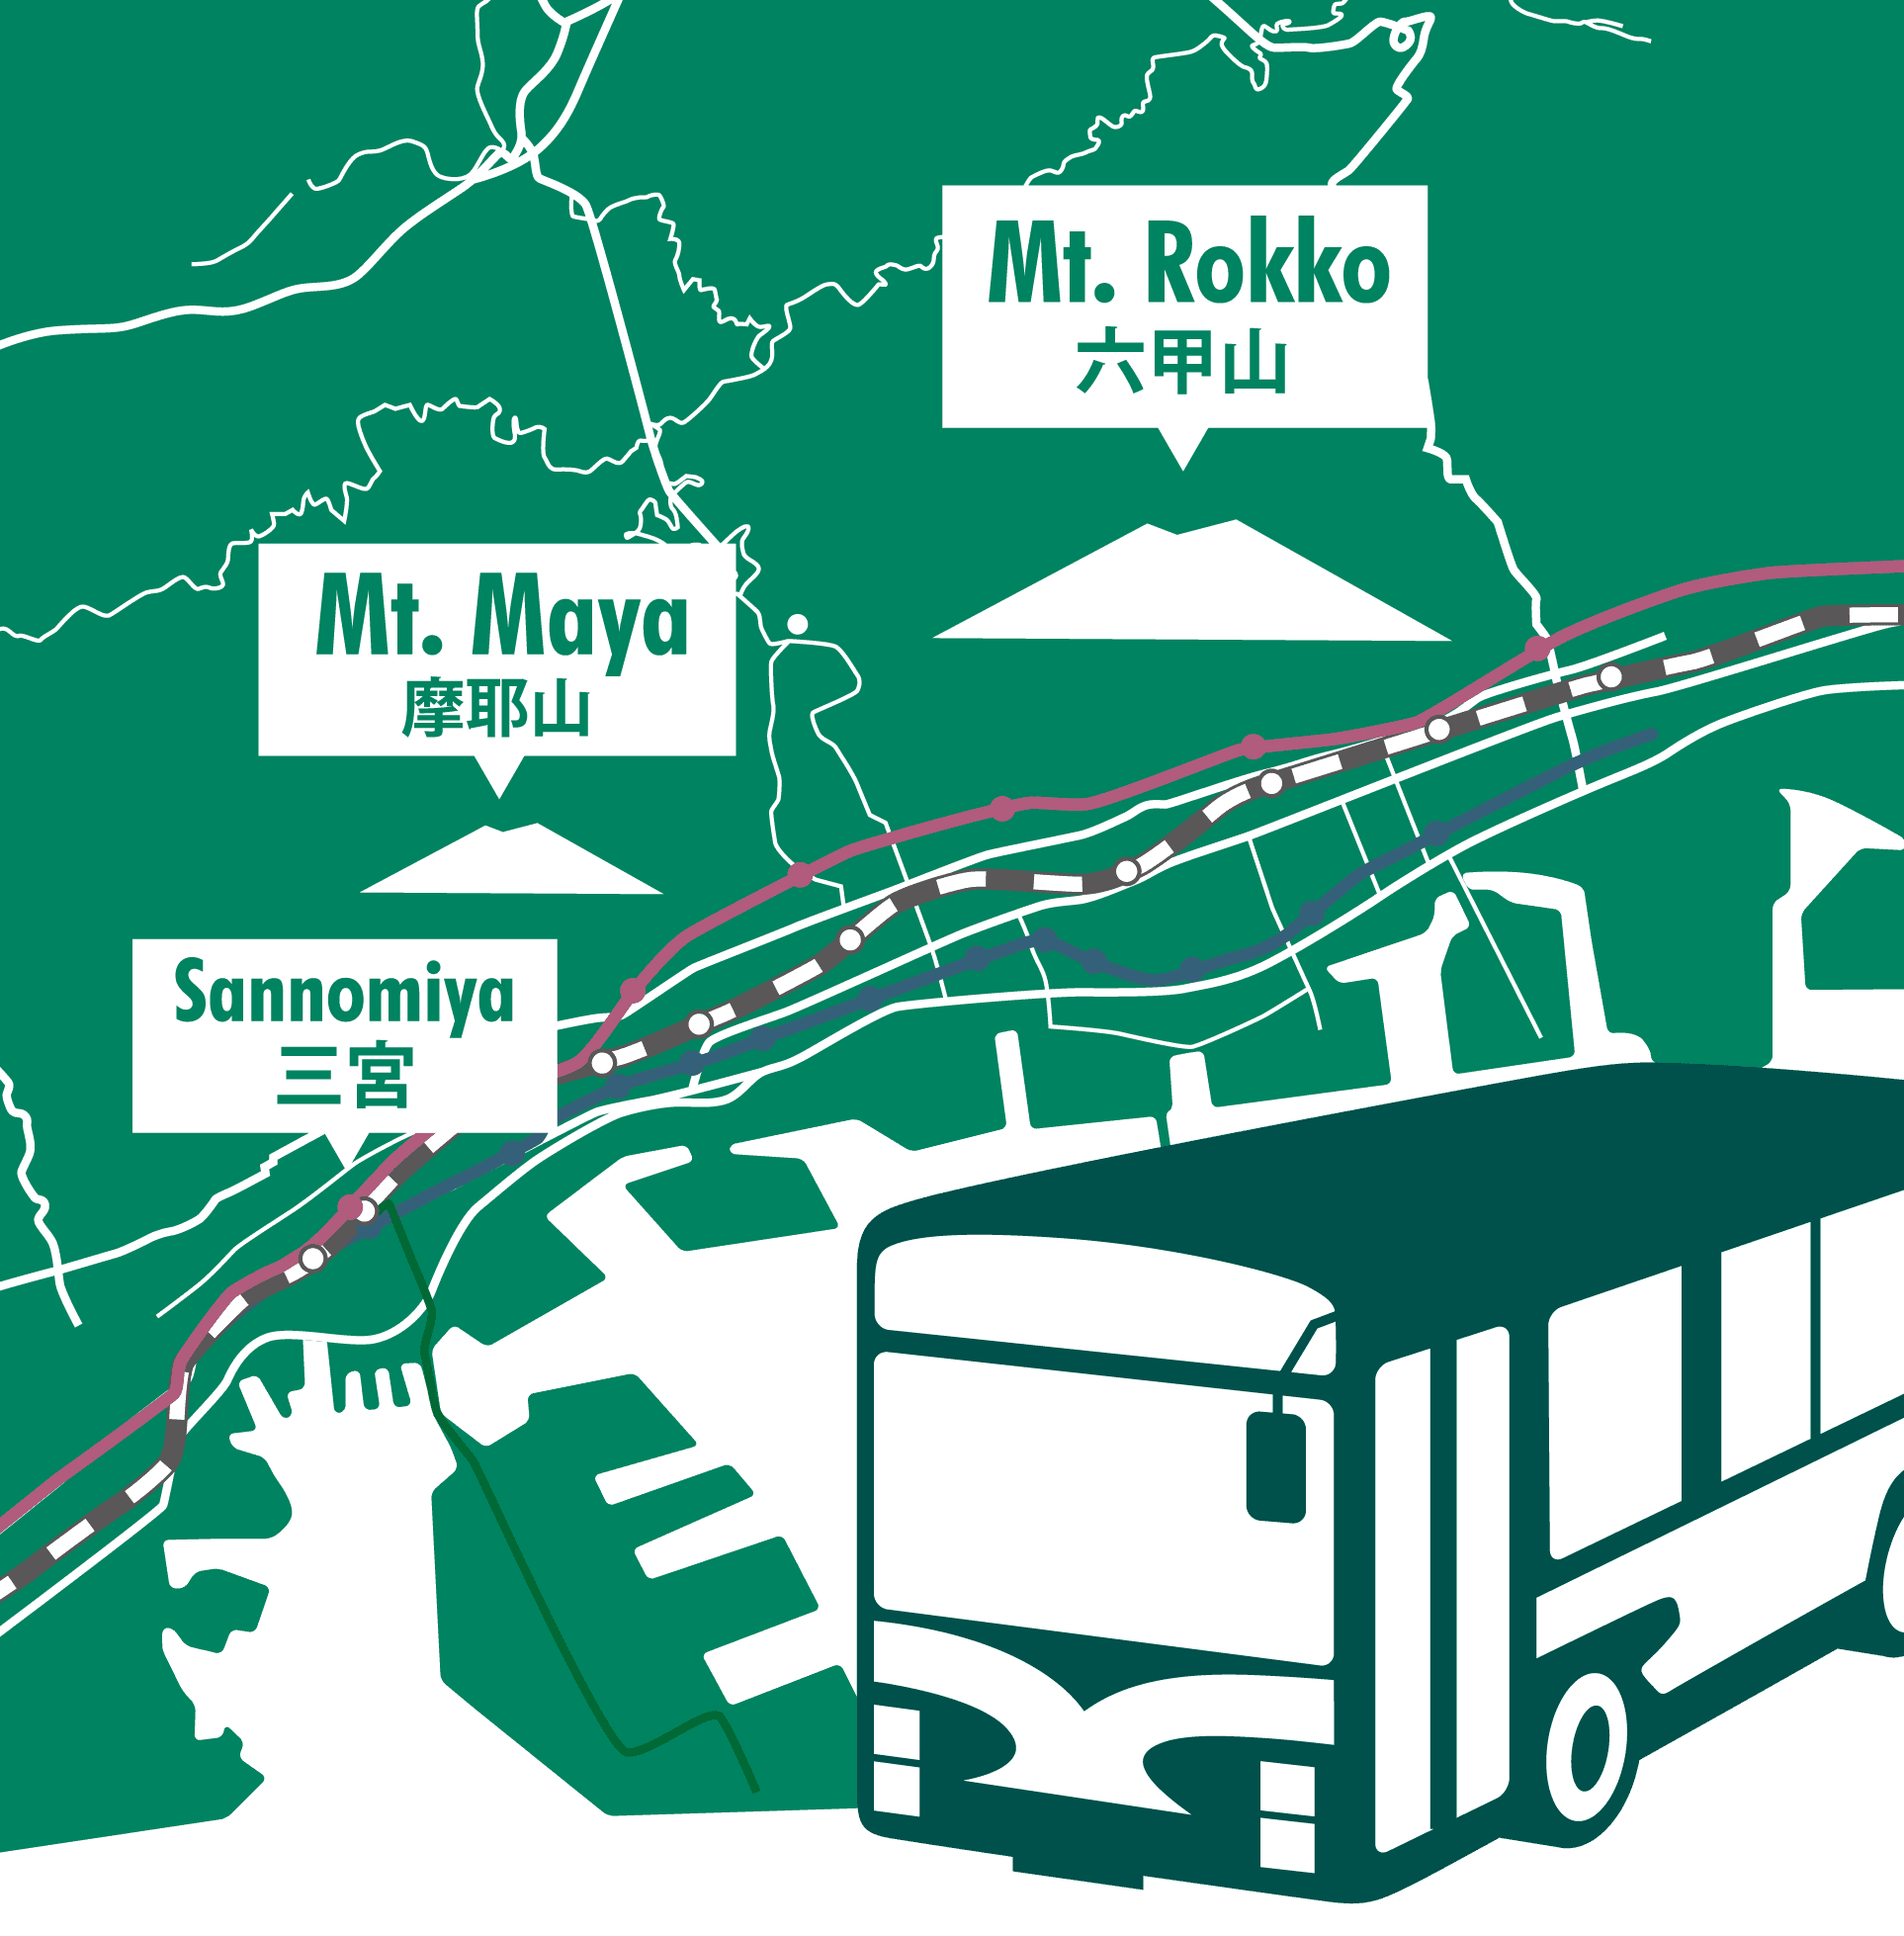 You can easily access Rokko and Maya by bus!